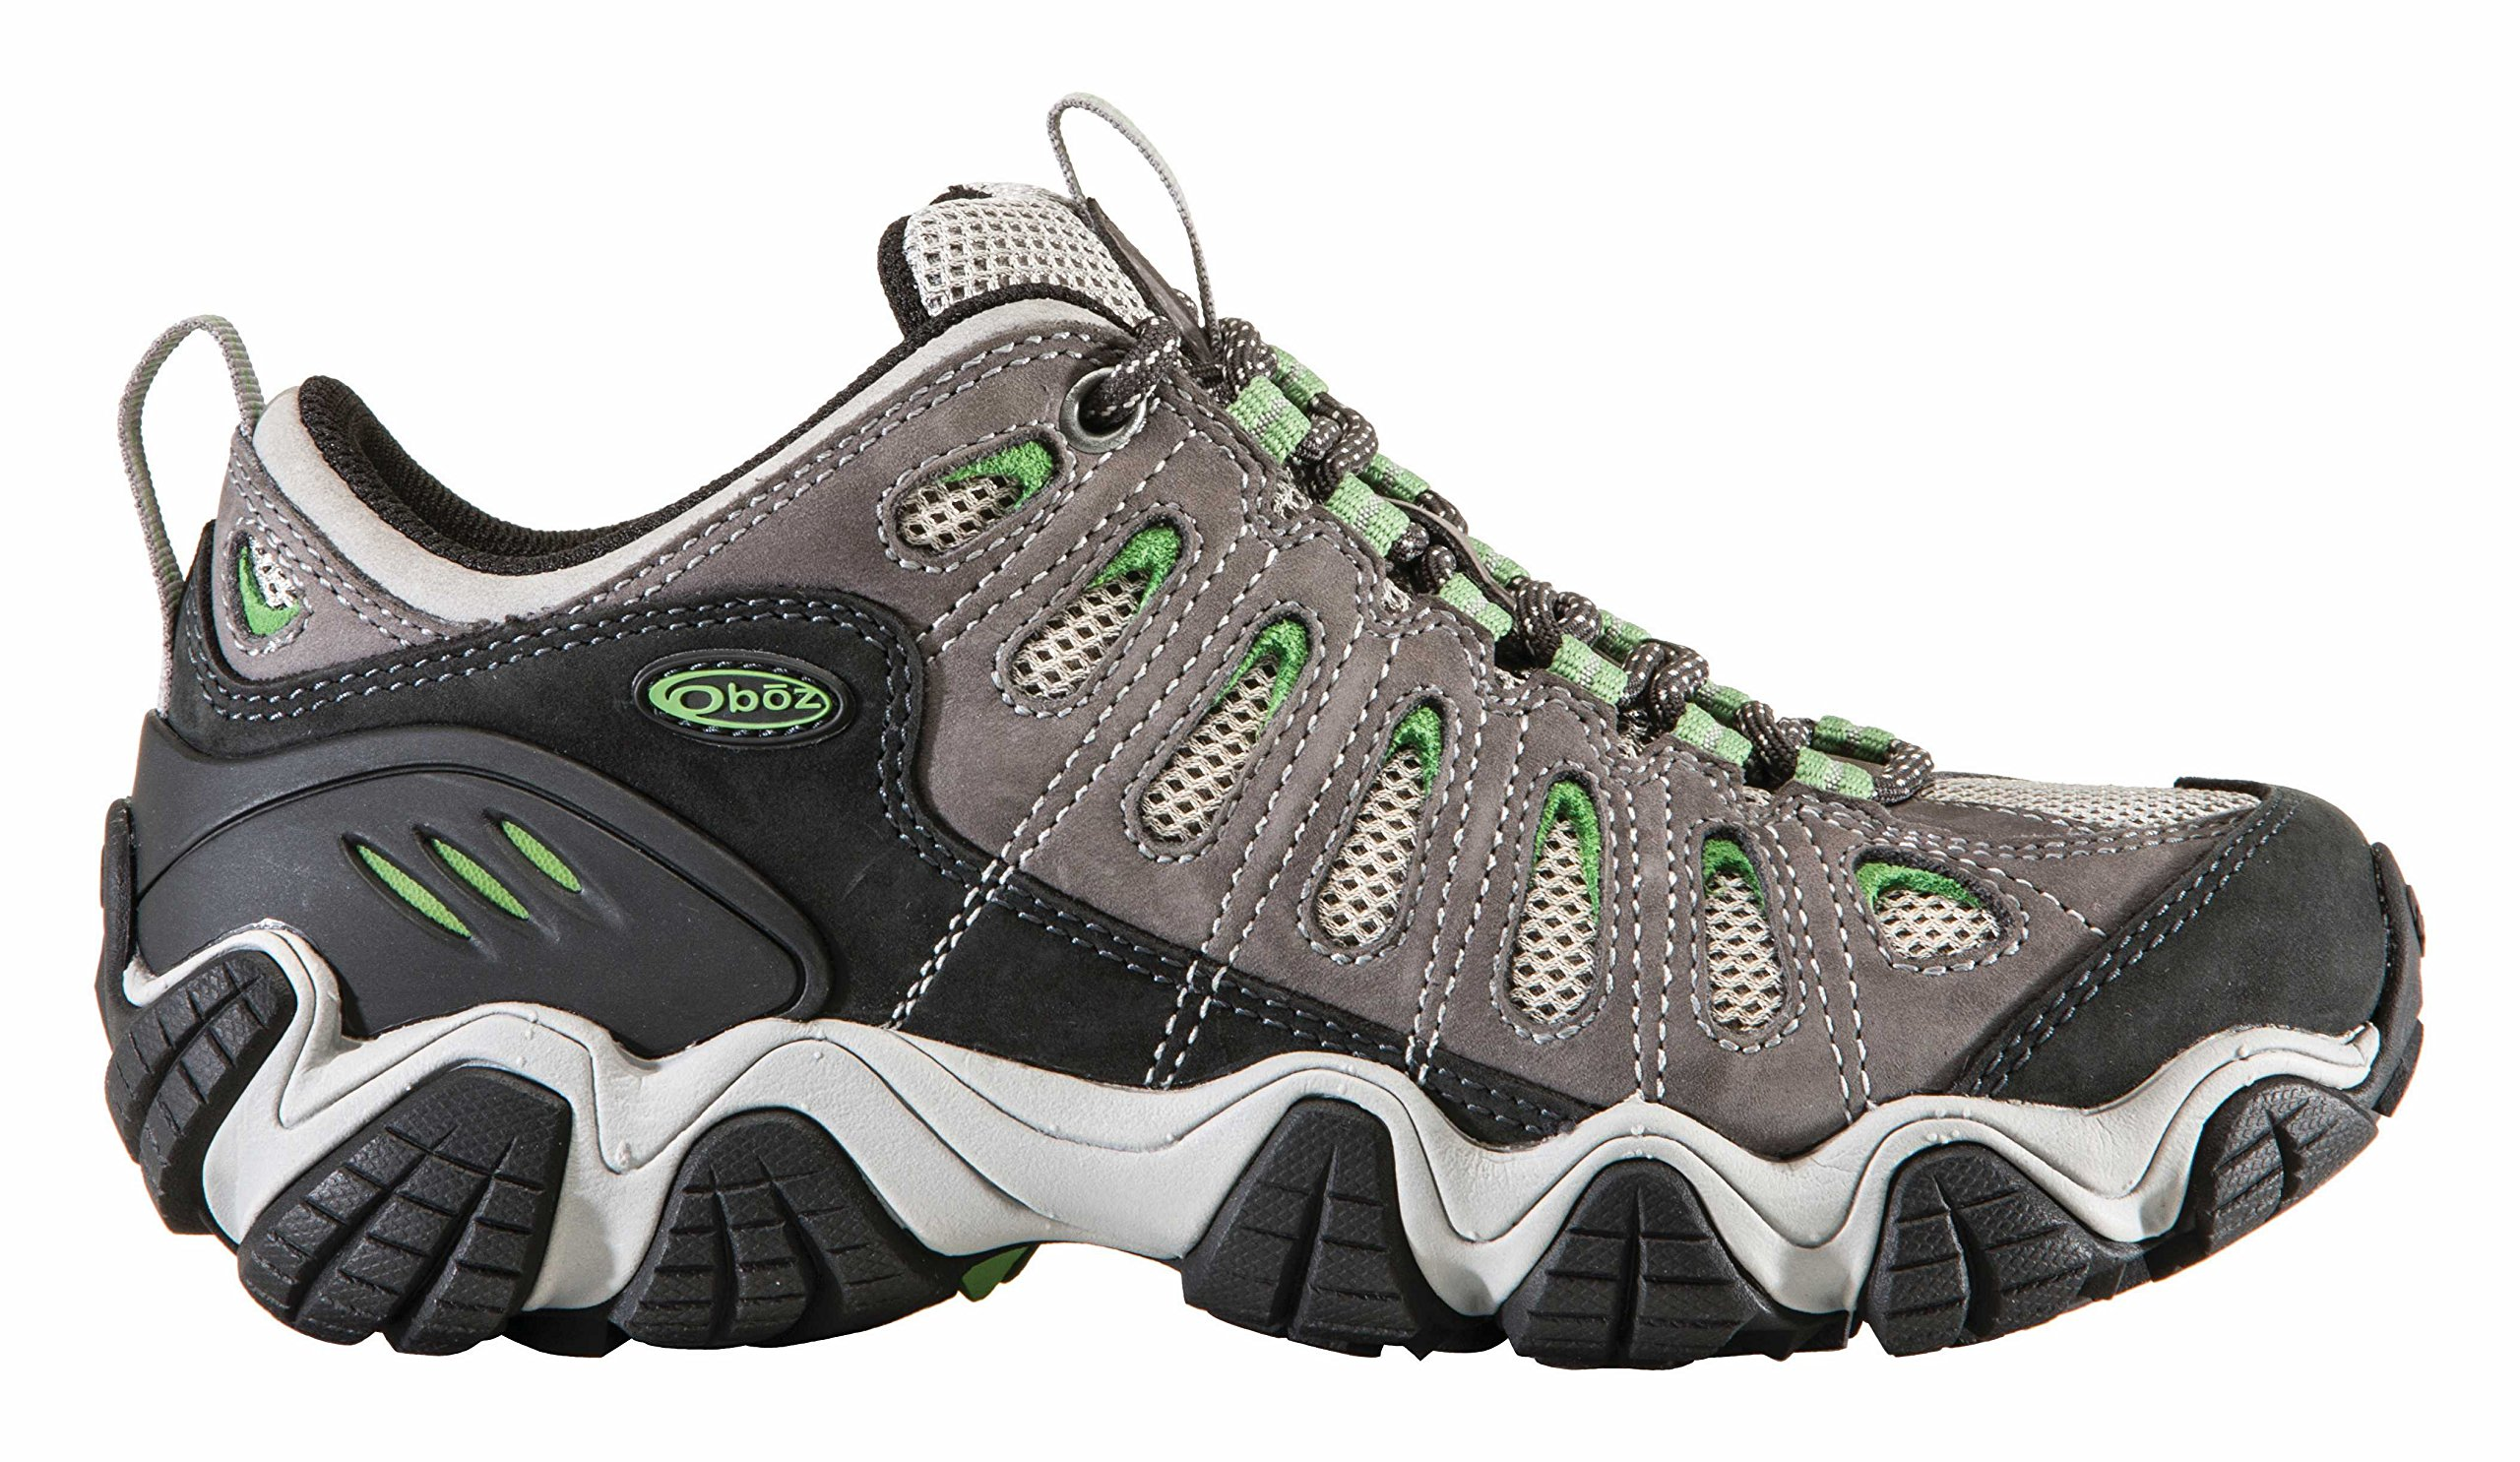 Oboz Women's Sawtooth Low Hiking Shoe,Clover,7 M US by Oboz (Image #2)